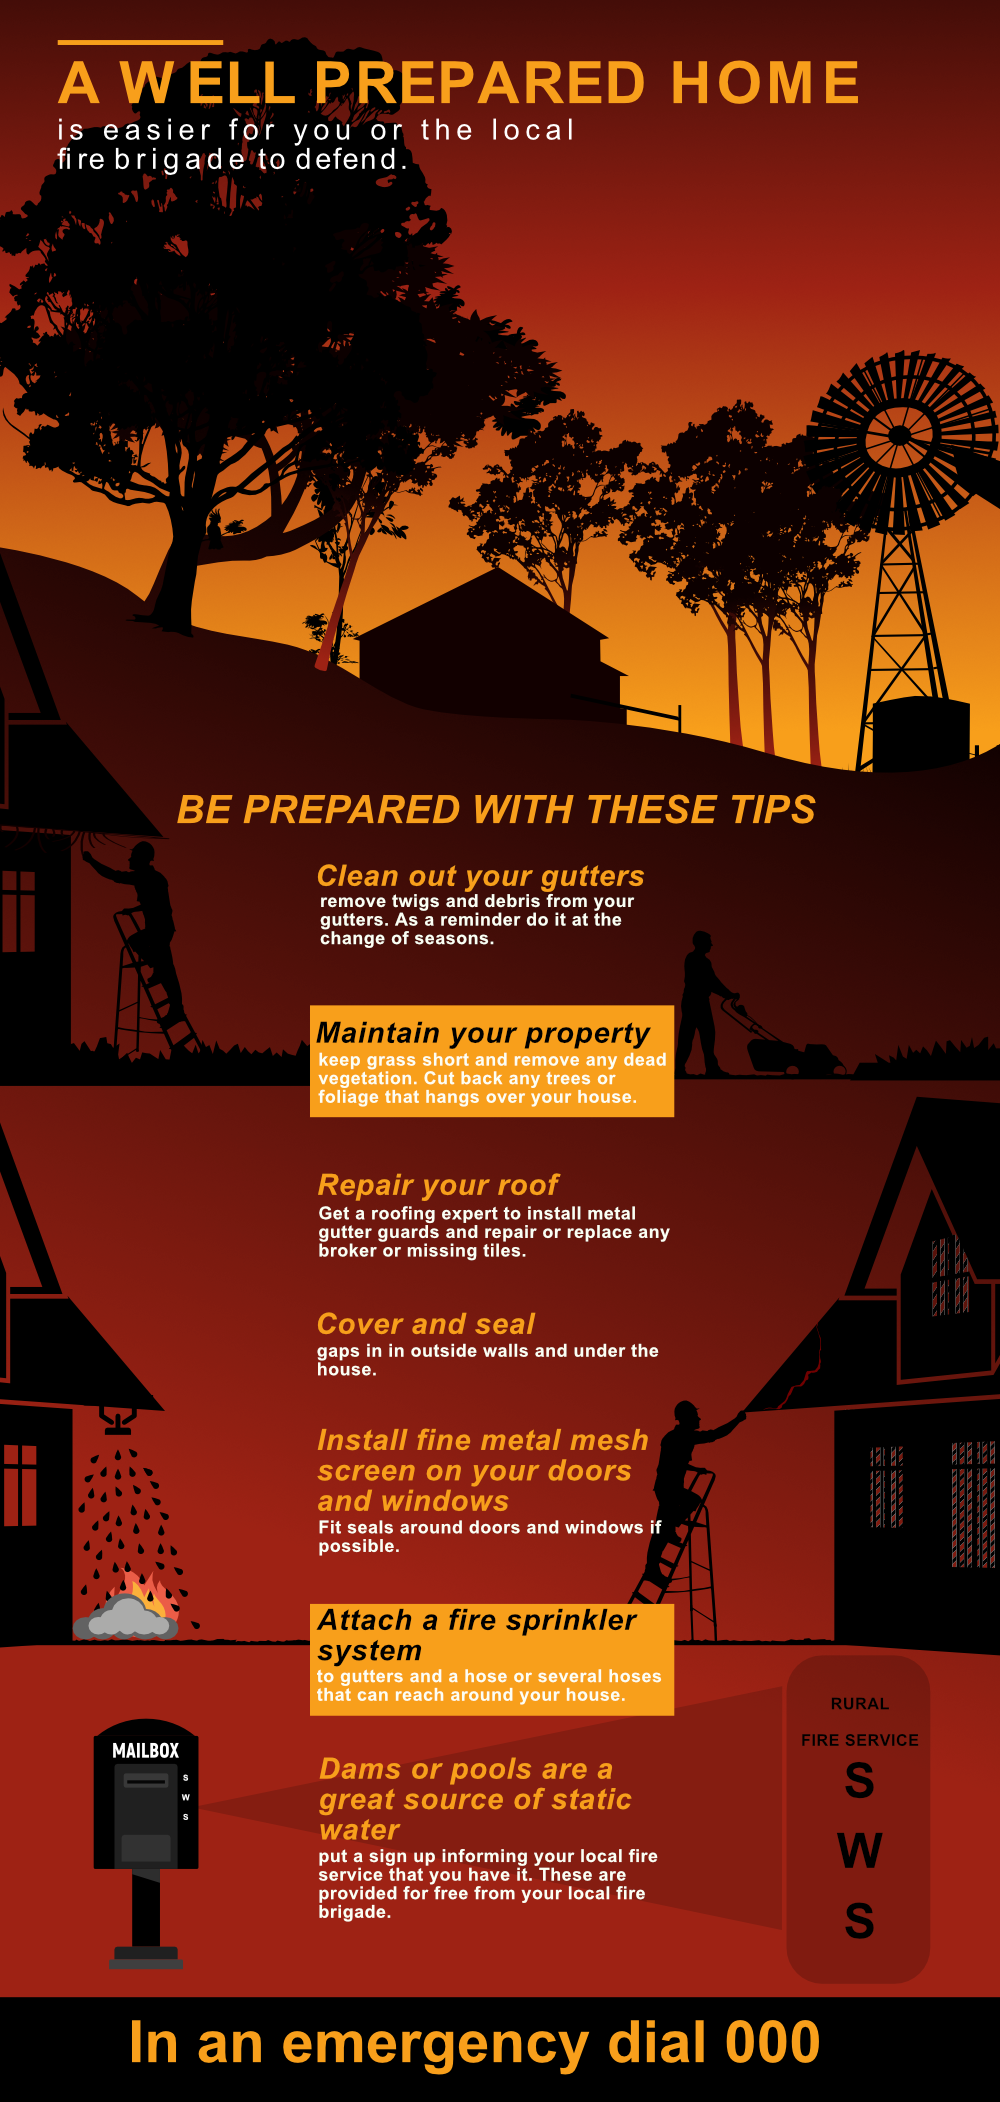 A Well Prepared Home is Easier for Your Defend #infographic